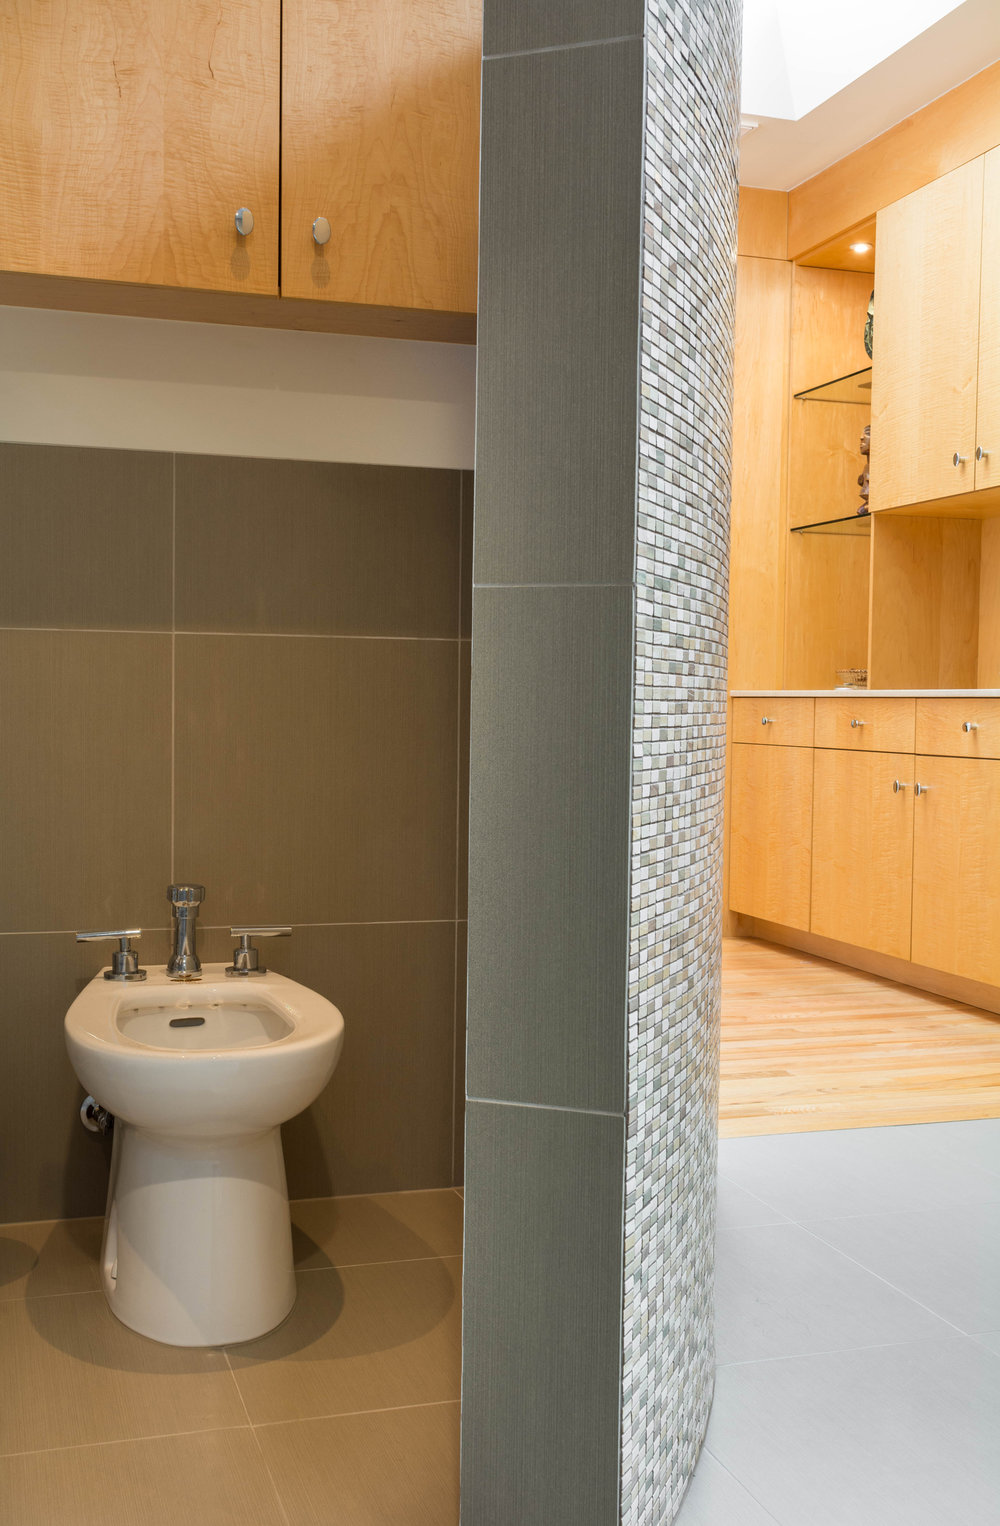 White bidet next to curved mosaic tile privacy wall and modern large-format tile wainscot